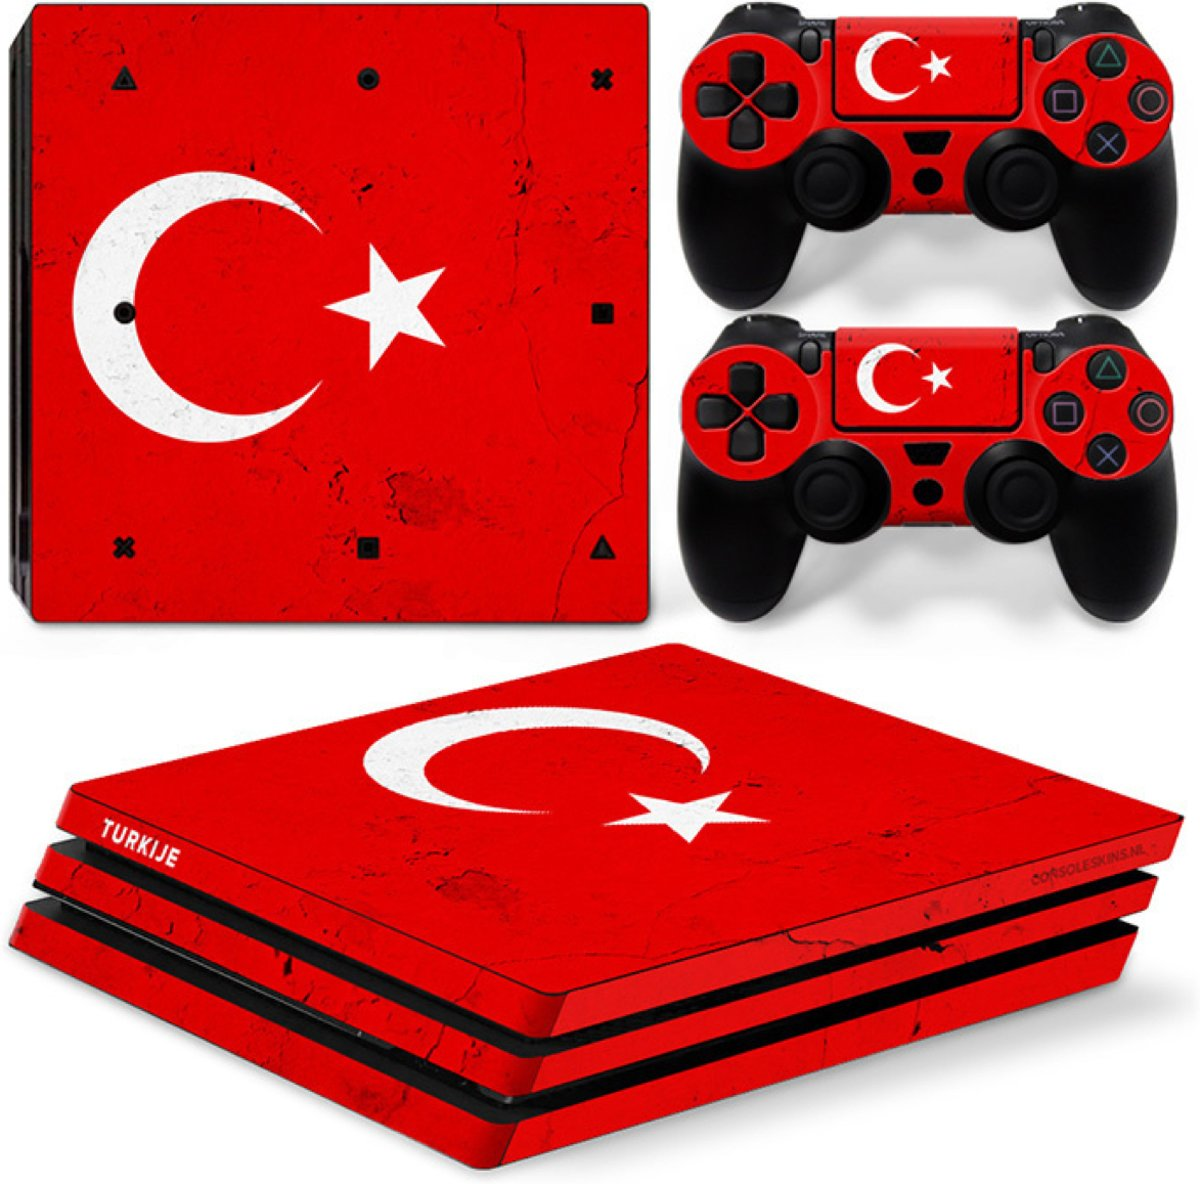 Turkije - PS4 Pro Console Skins PlayStation Stickers